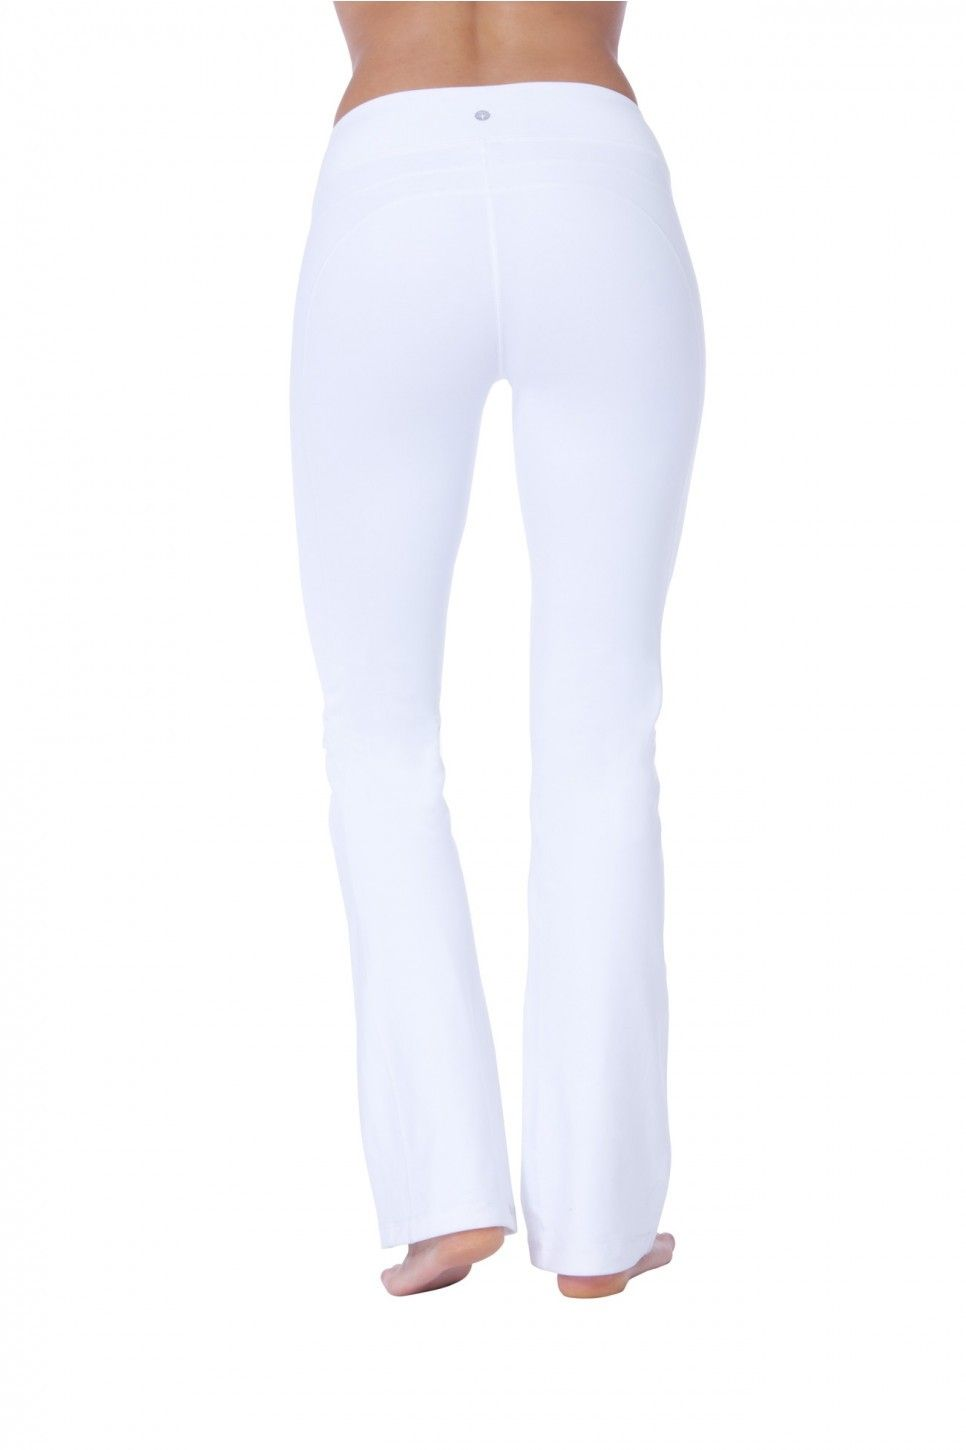 ef6dc8f10cab4 Soybu Killer Caboose Pant White Yoga Pants For Women | Outfits Ideas ...